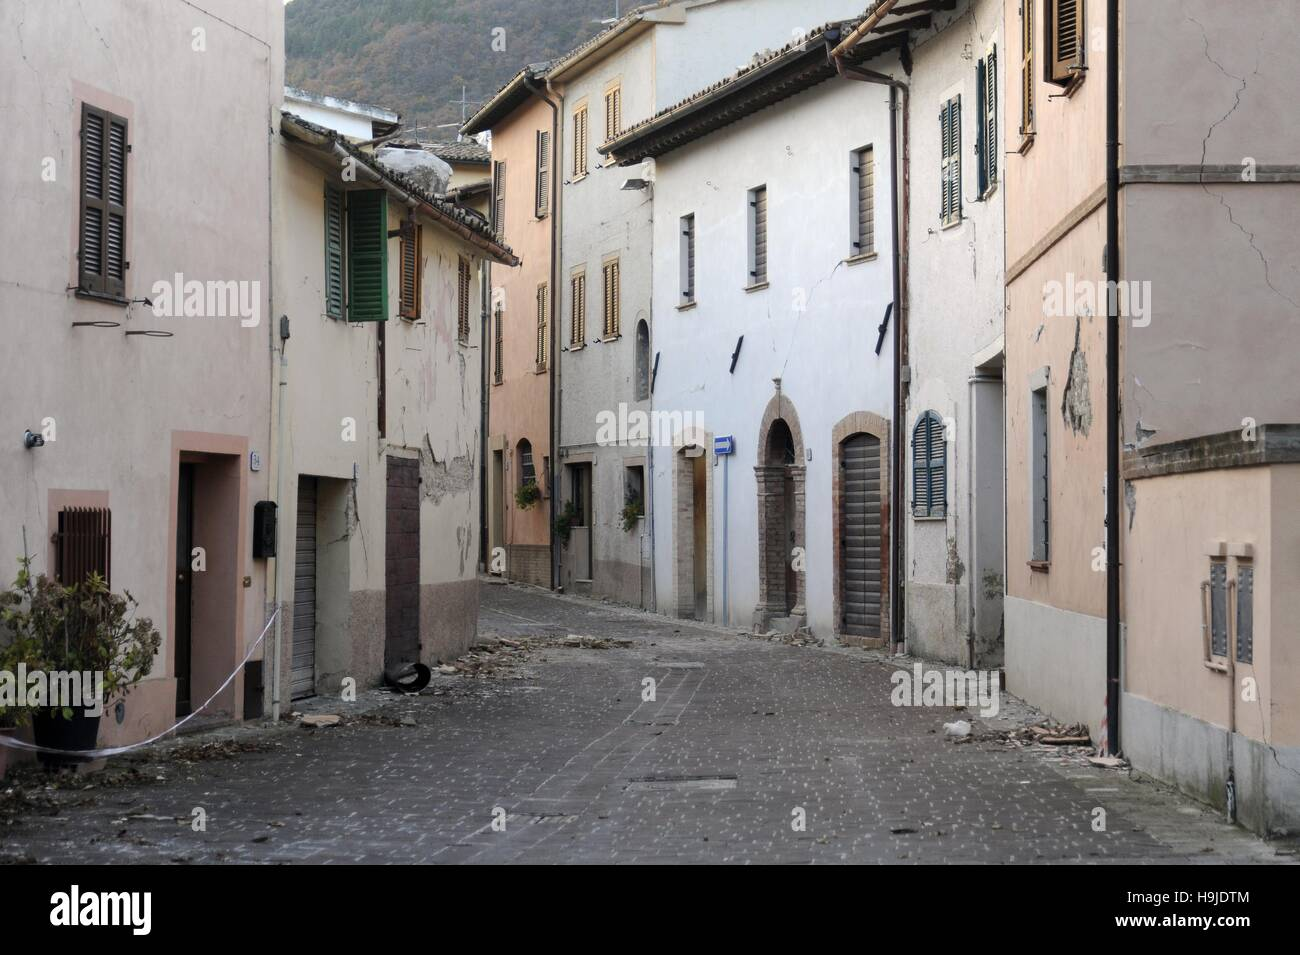 Earthquake in Center Italy, November 2016,  village of Muccia with the houses damaged and evacuated (Marche region) - Stock Image